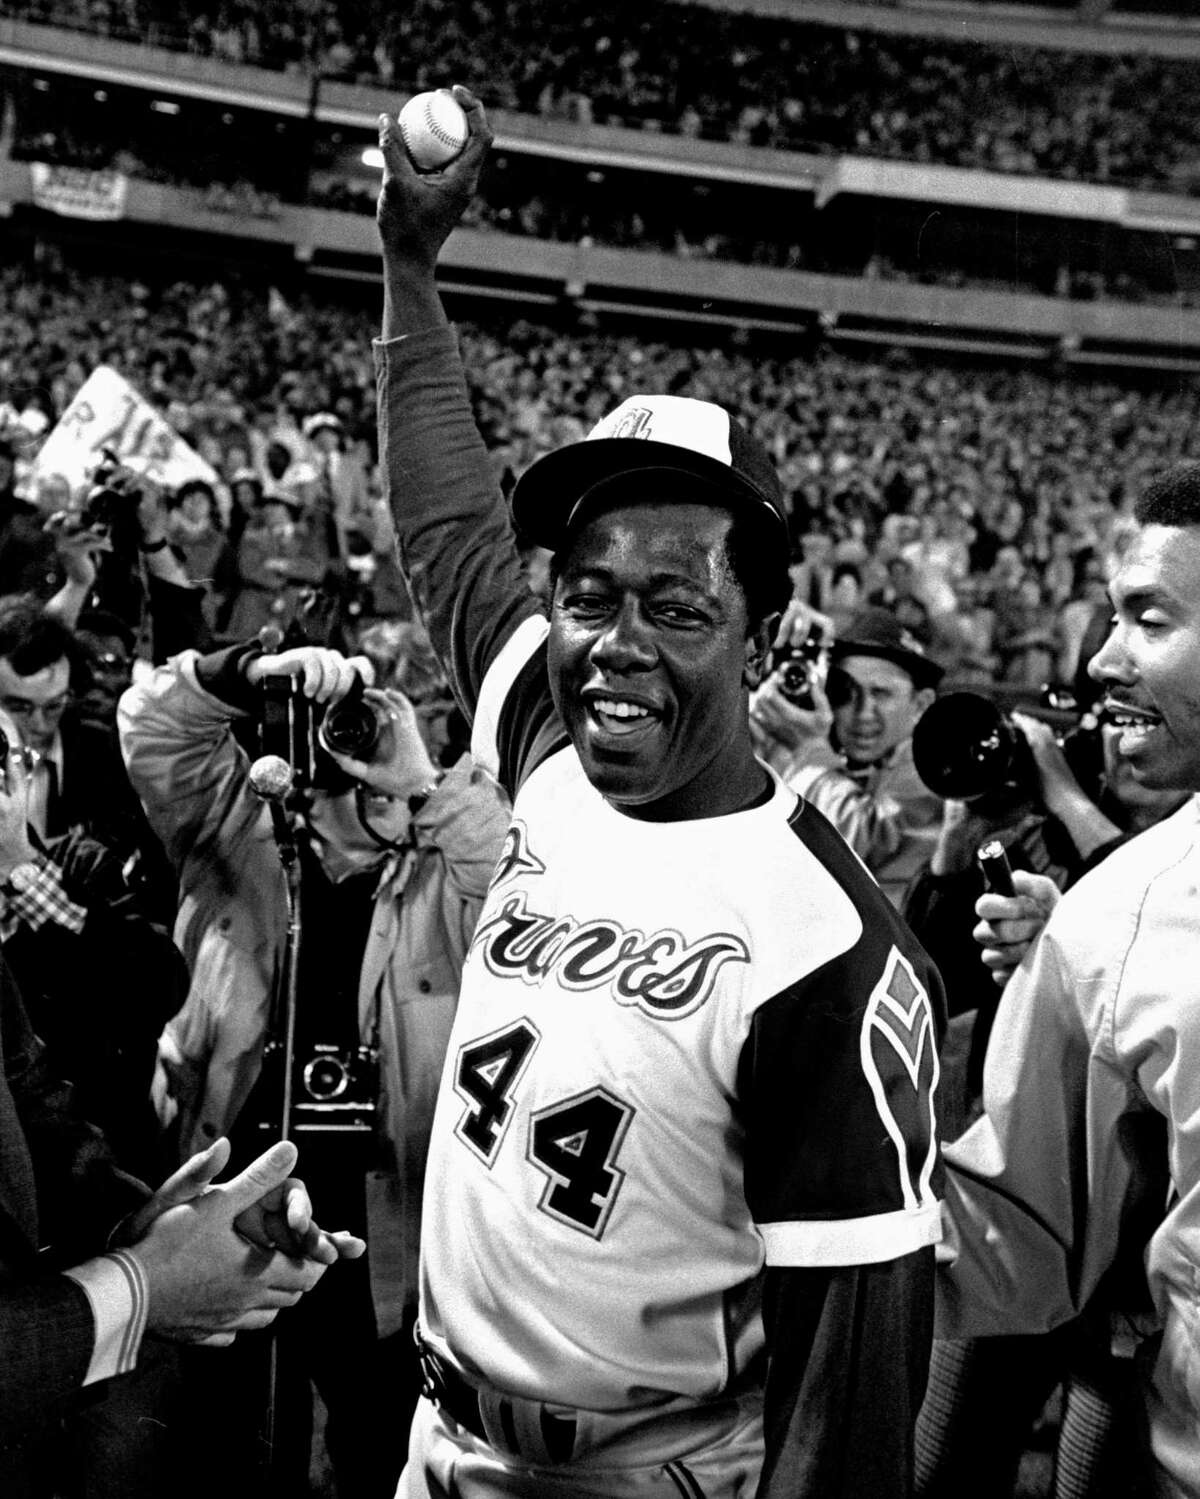 Hank Aaron holds a the ball he hit for his 715th career home run. Aaron transformed a chase for the most hallowed record in sports into a quest showcasing that the national pastime was as inextricably tied to the national problem of racism as is every American institution.